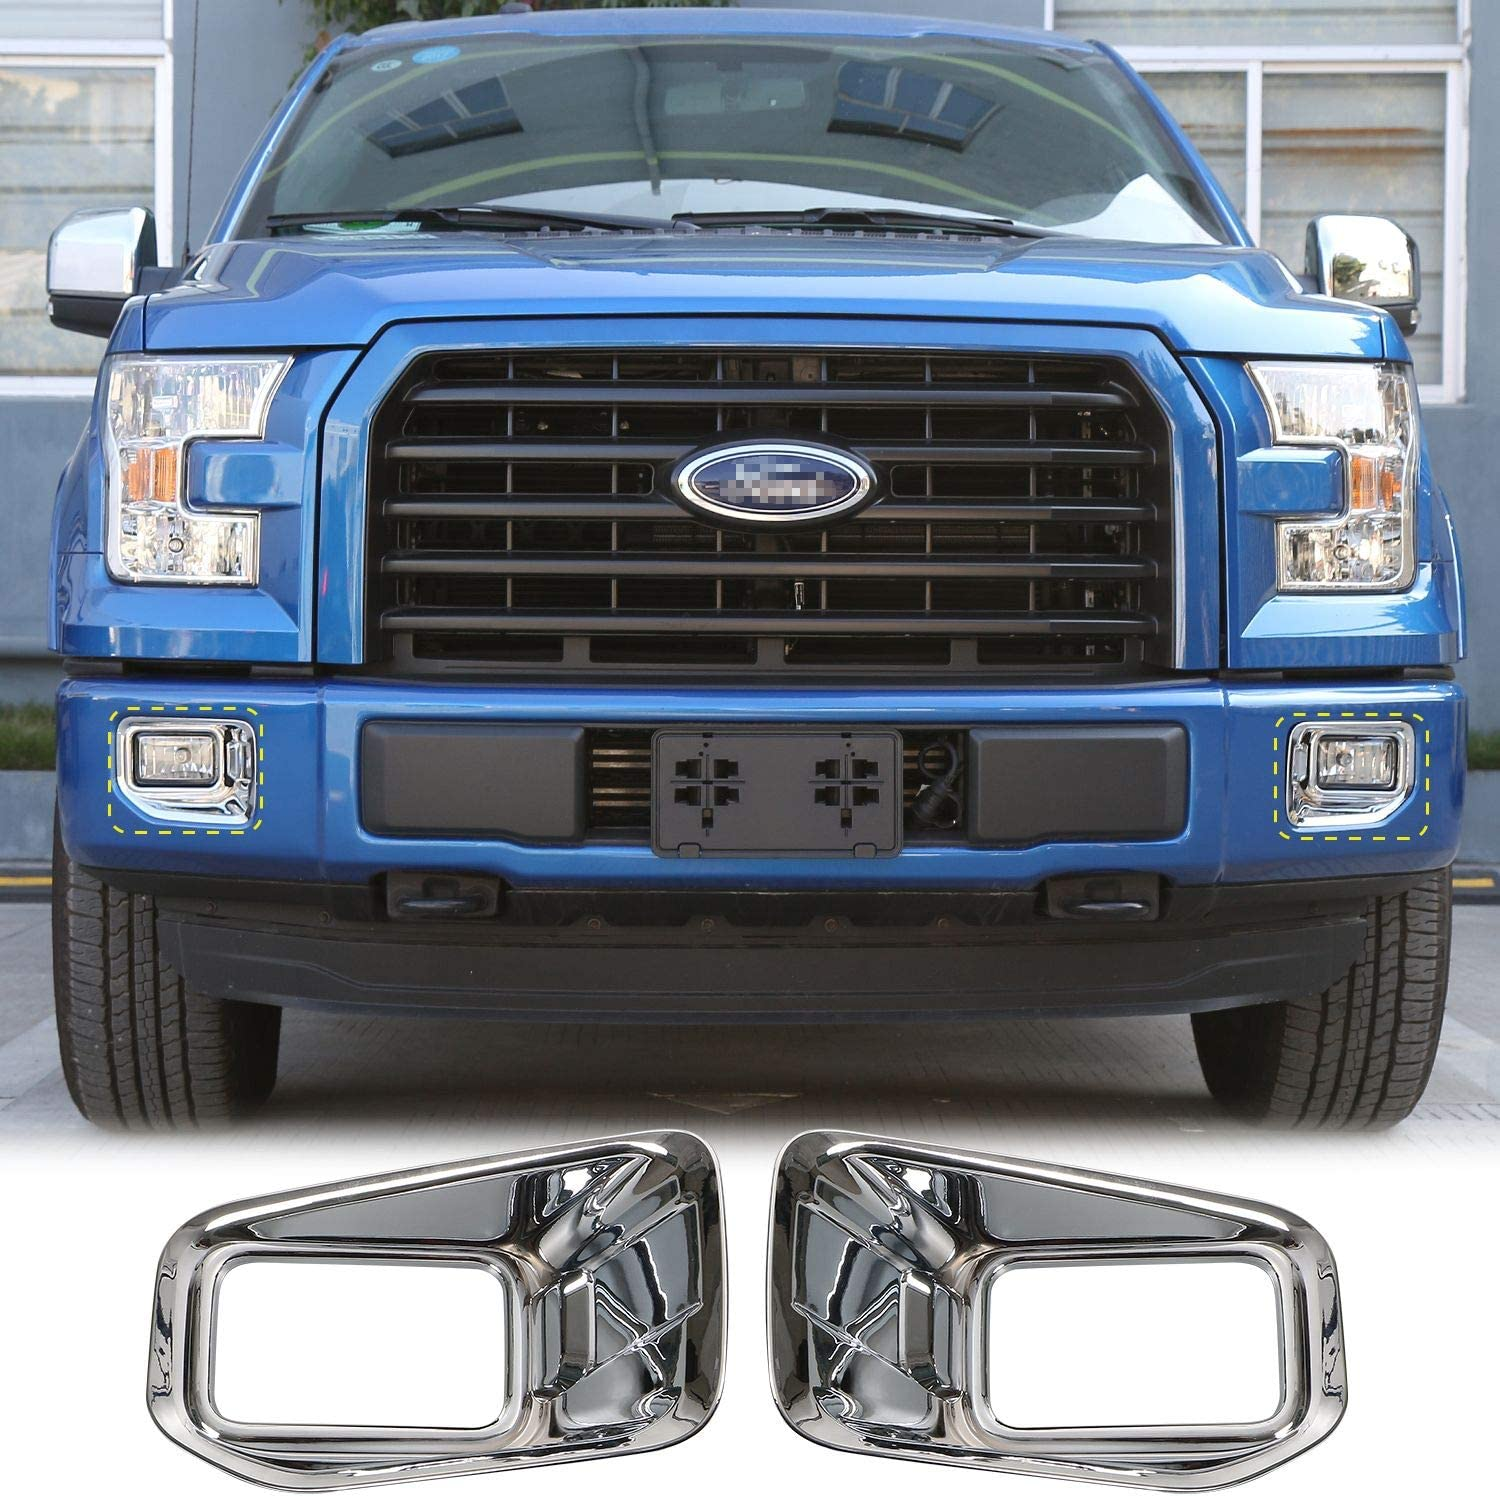 Car ABS Front Fog Light Lamp Decoration Cover Trim for Ford F150 XLT 2015-2017 Chrome